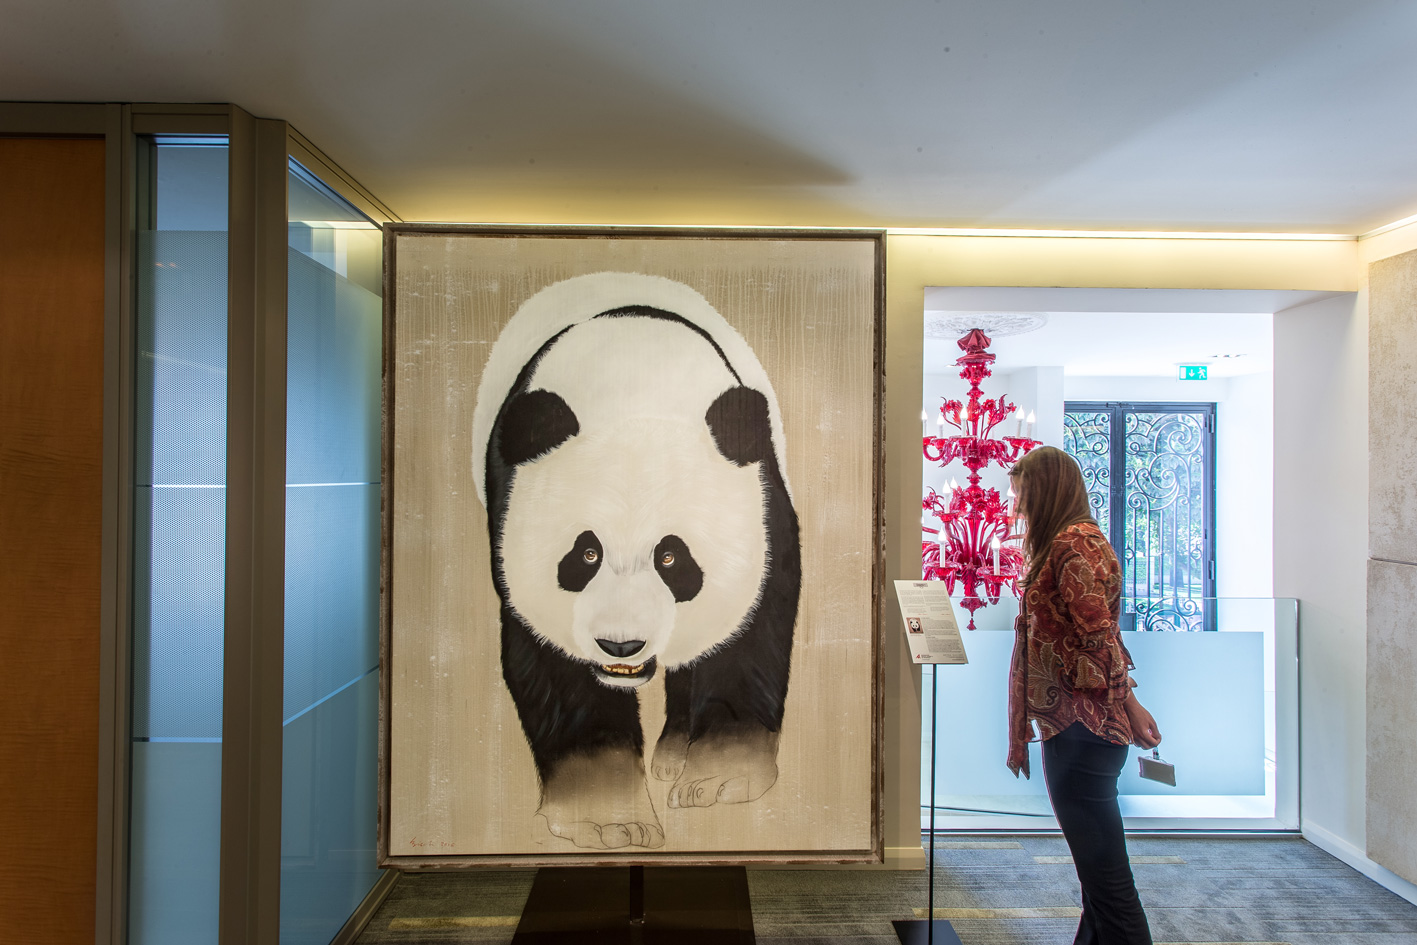 BARCLAY`S BANK panda-giant-ailuropoda-melanoleuca-threatened-endangered-extinction Animal painting by Thierry Bisch pets wildlife artist painter canvas art decoration